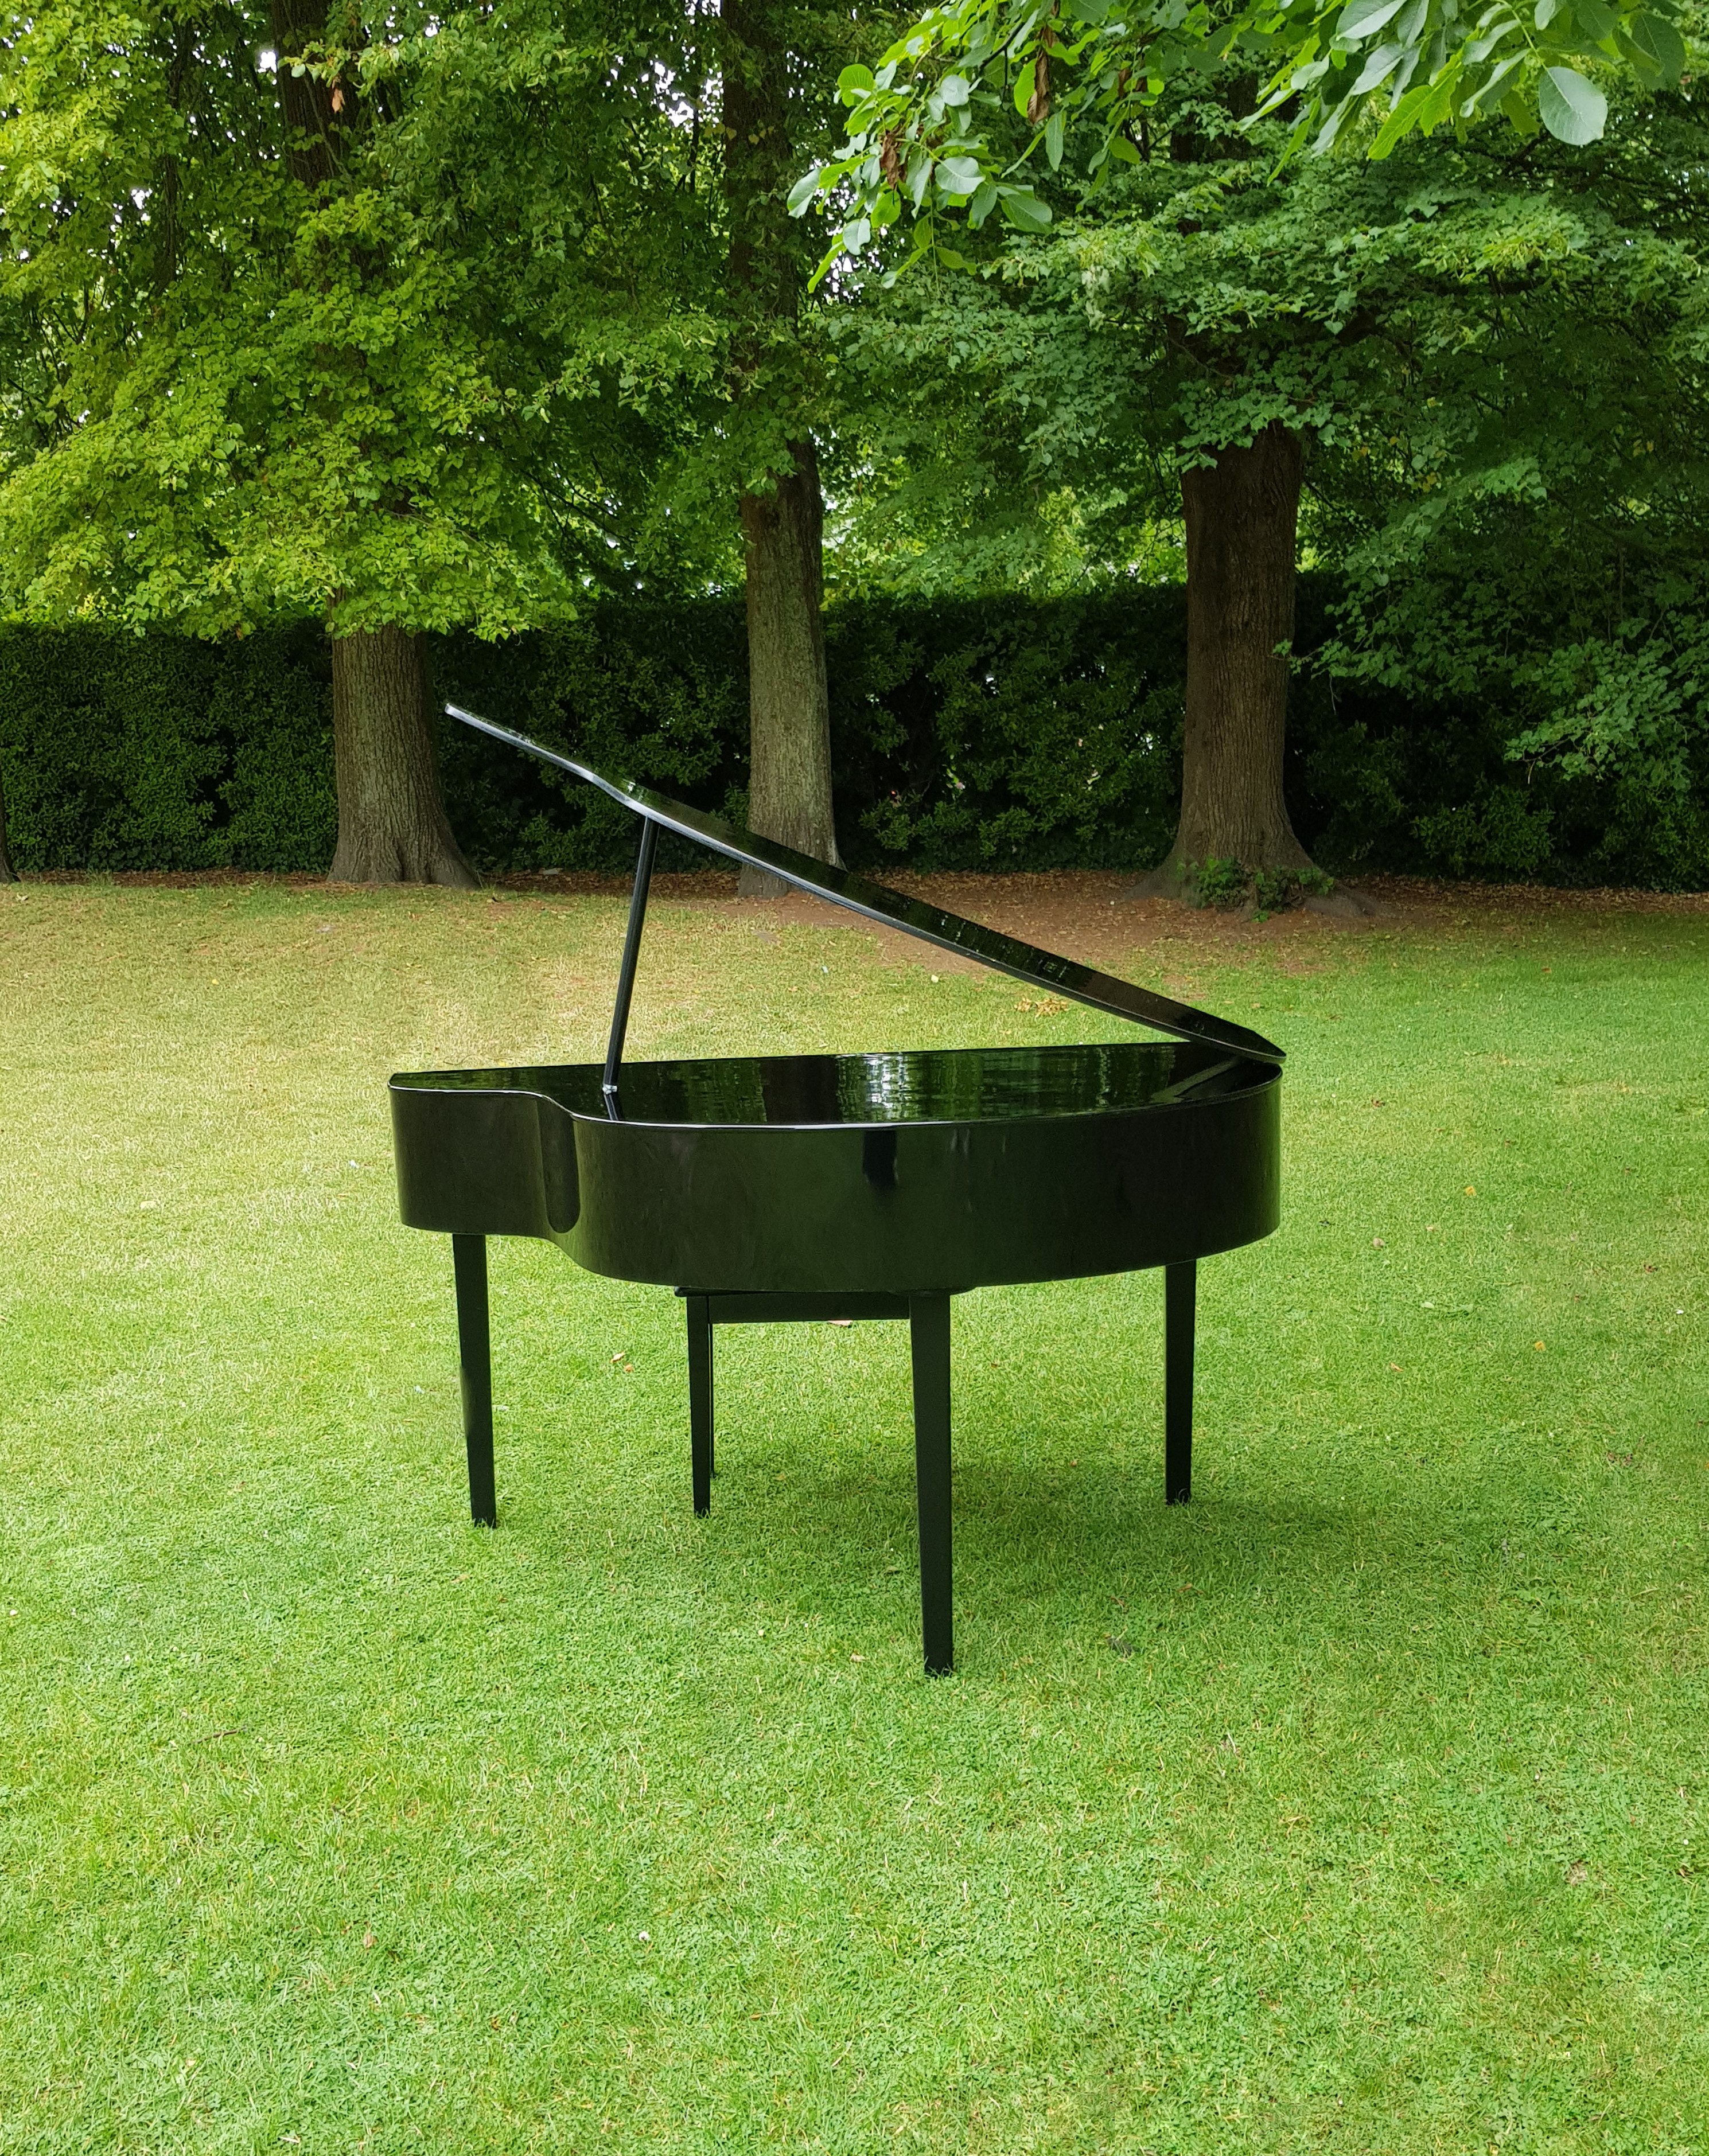 piano with trees